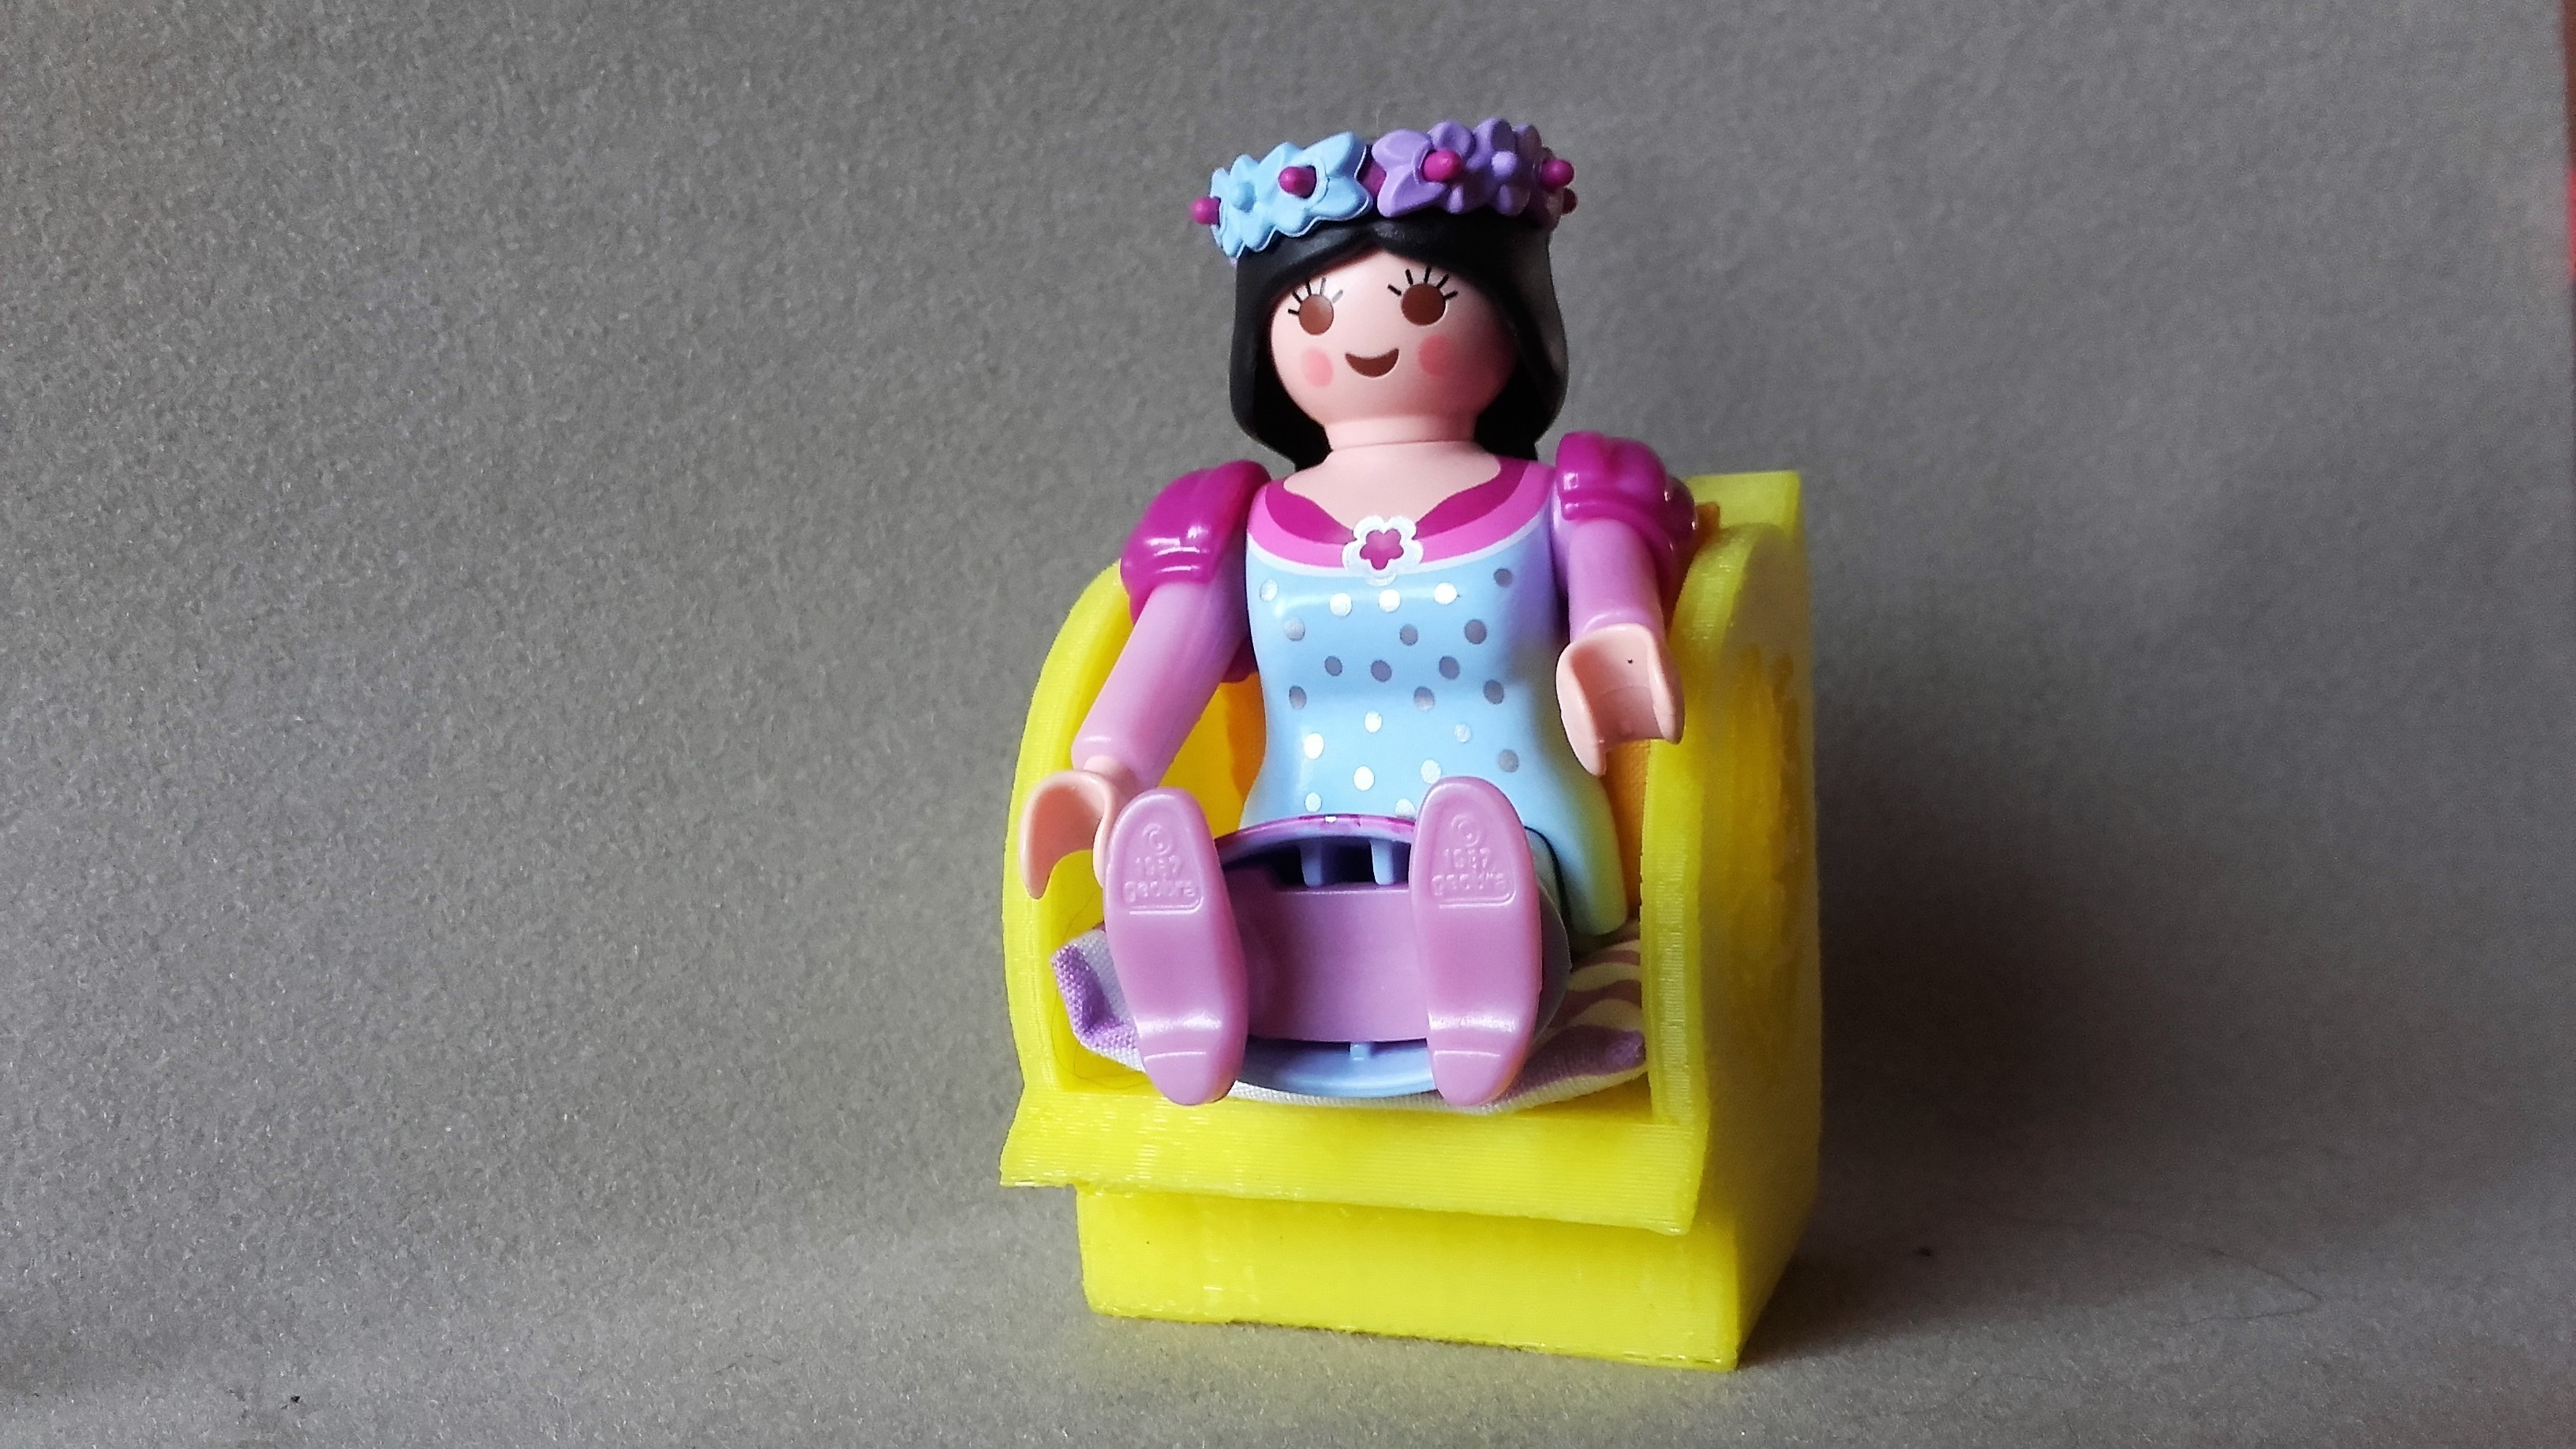 20170317_113914.jpg Download free STL file armchair for playmobil • Object to 3D print, catf3d